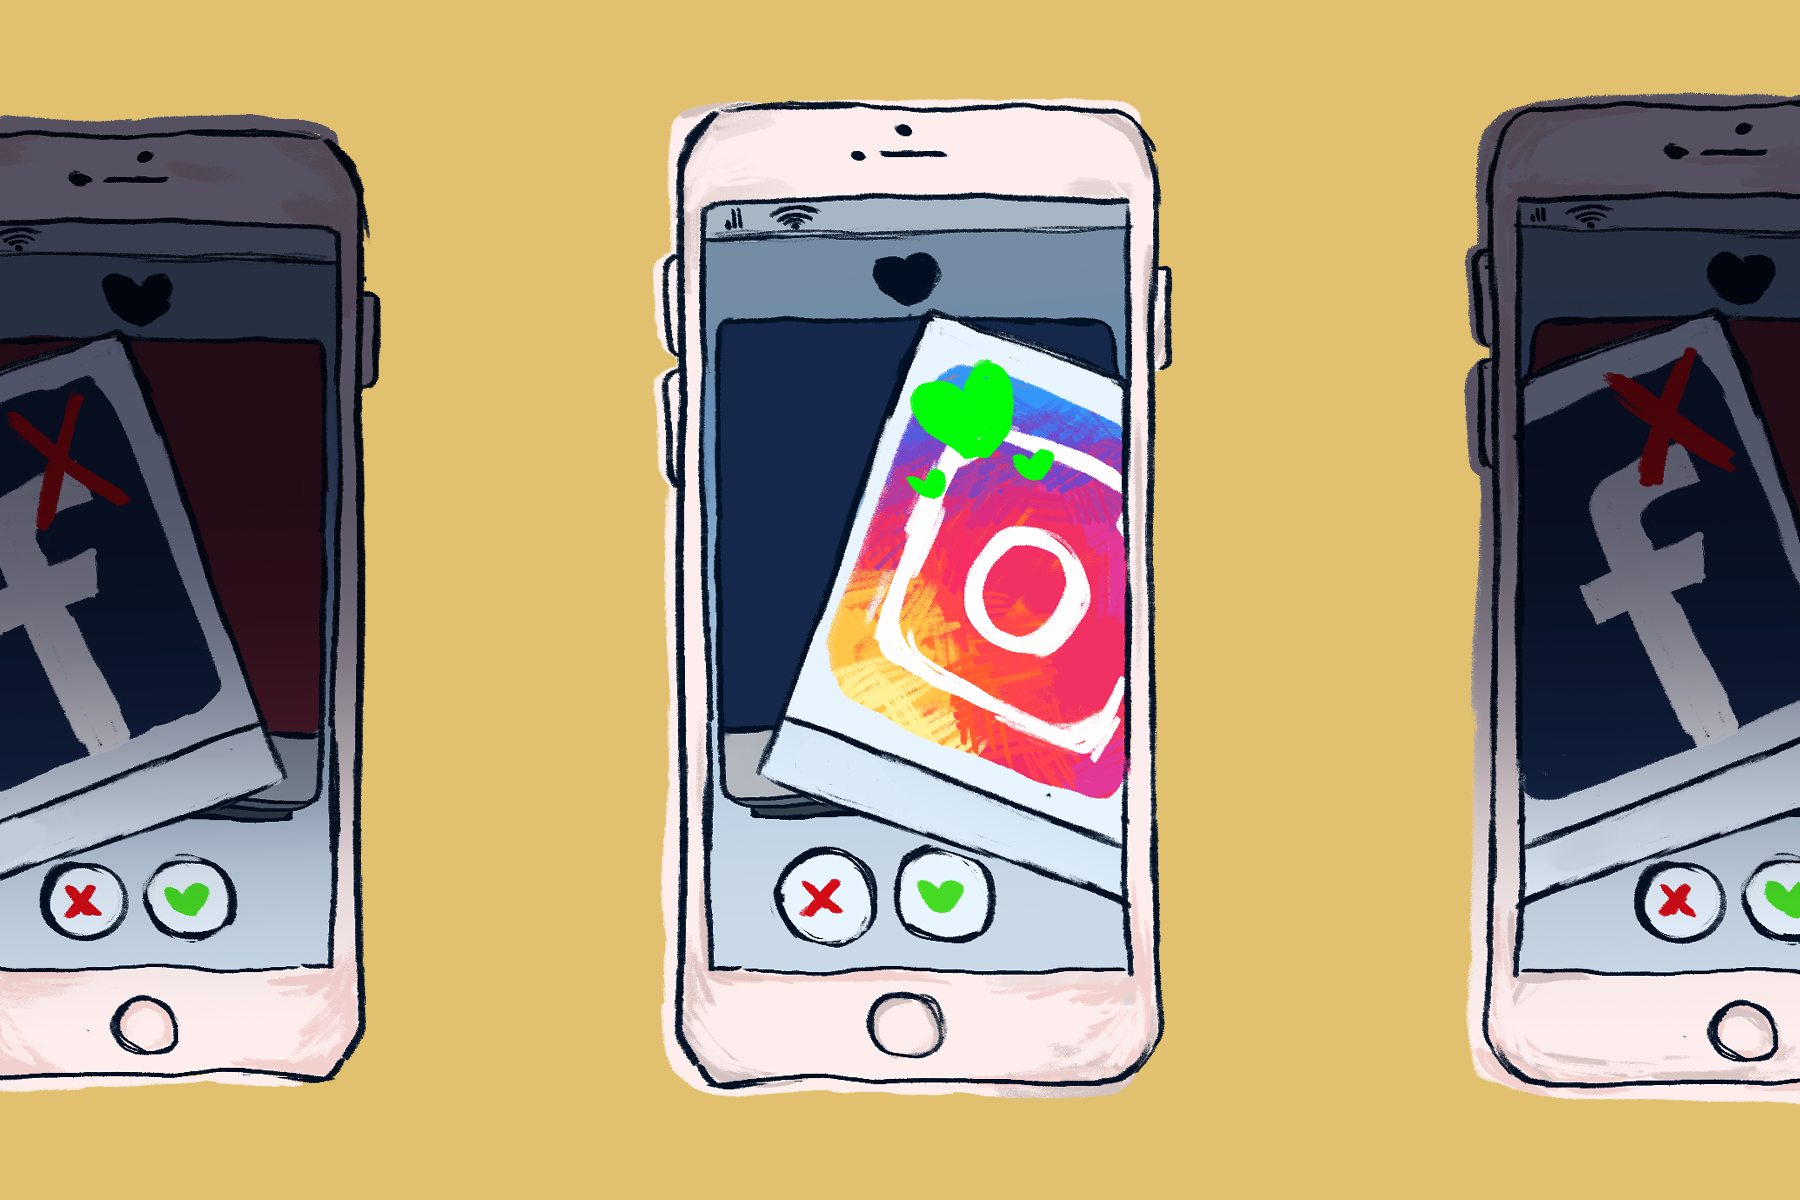 An illustration of the Instagram app in an article discussing Gen Zers use of social media. (Illustration by Lucas DeJesus, Montserrat College of Art)